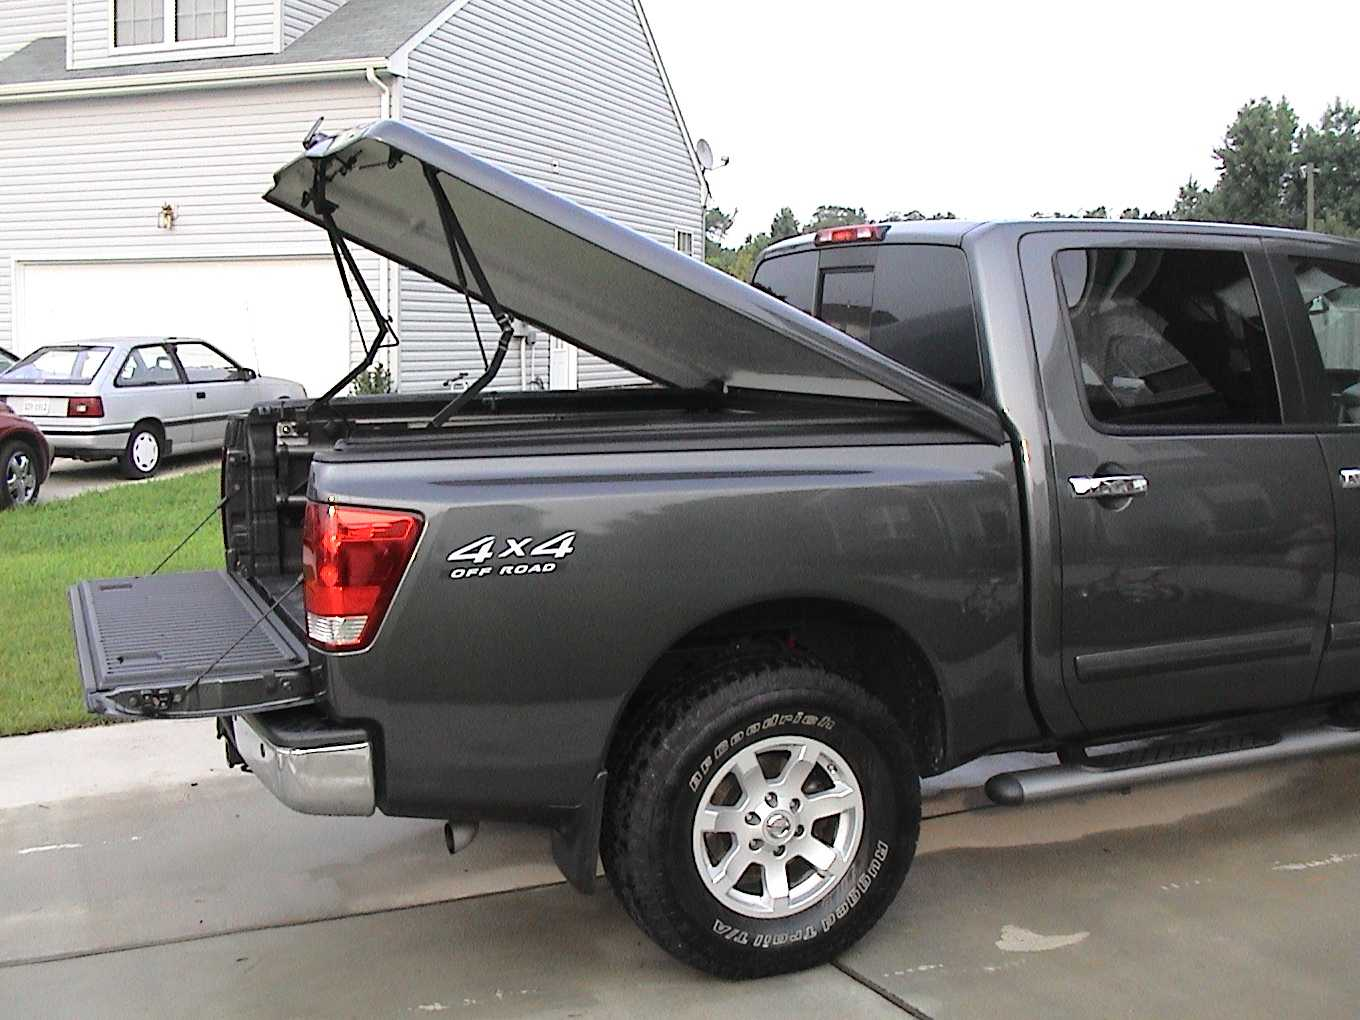 2291d1088955073 help electronic opening lsii tonneau cover titan cover5 help with electronic opening of lsii tonneau cover nissan titan  at n-0.co